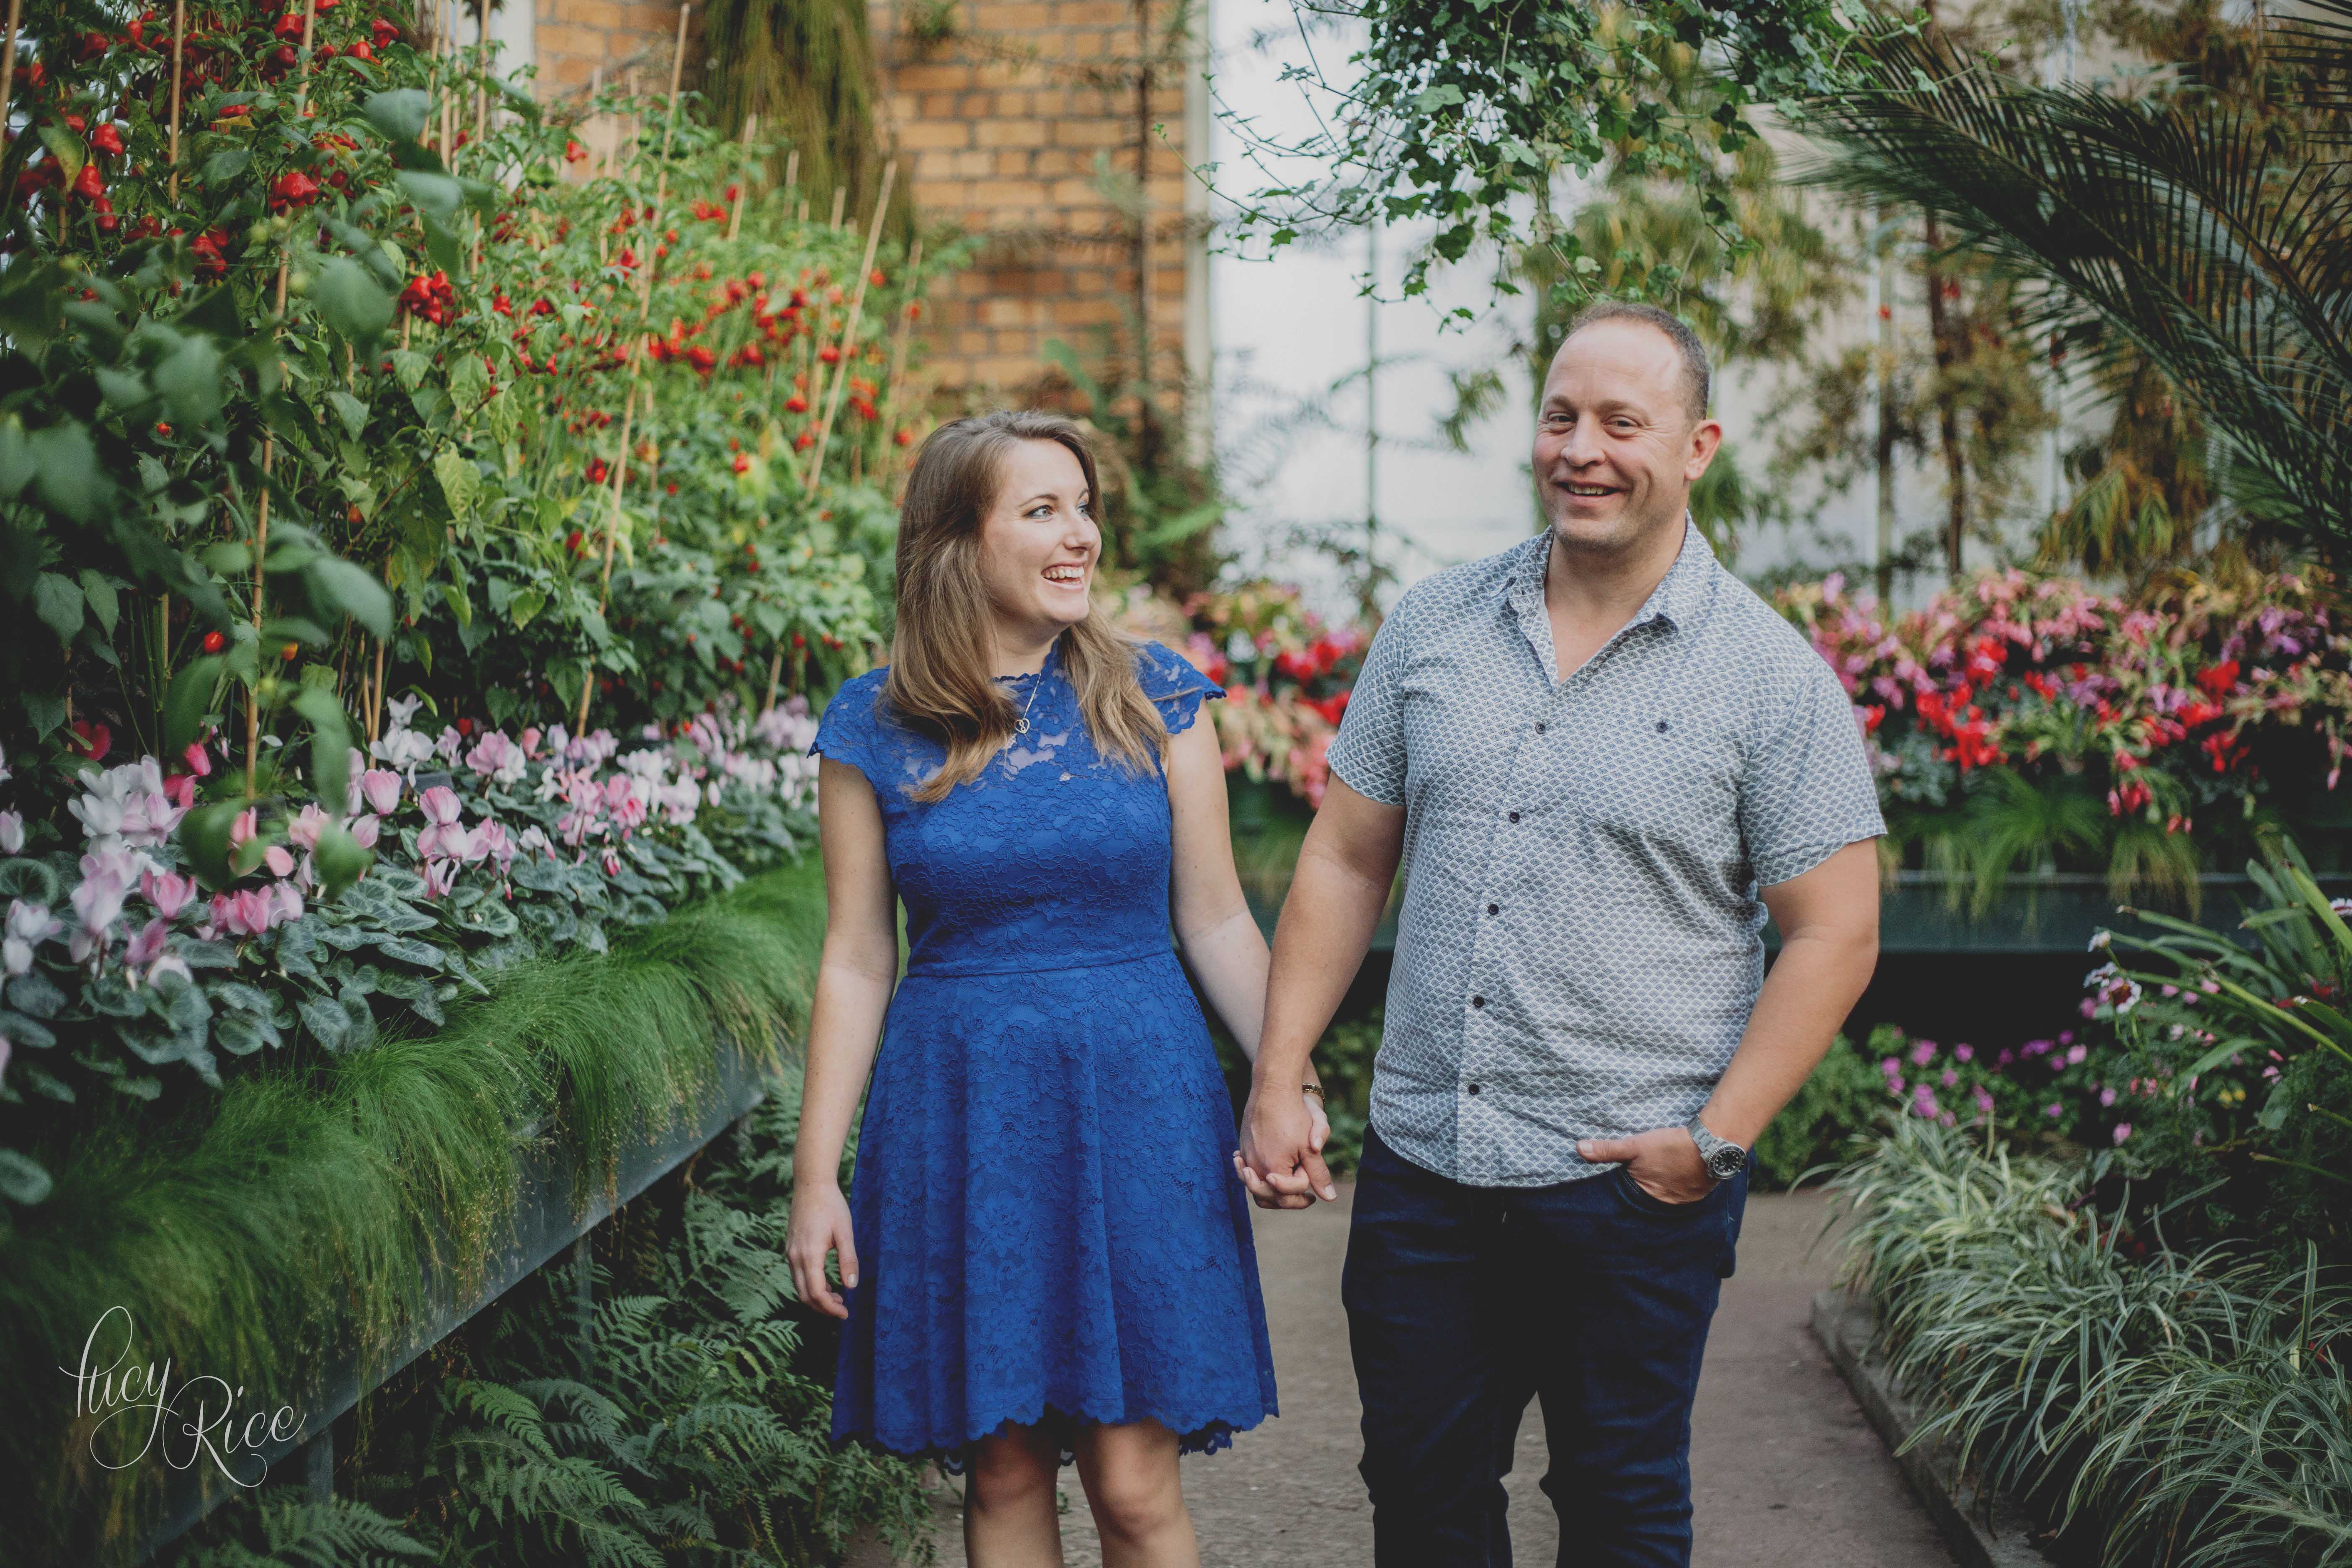 engagement shoot auckland lucy rice photography